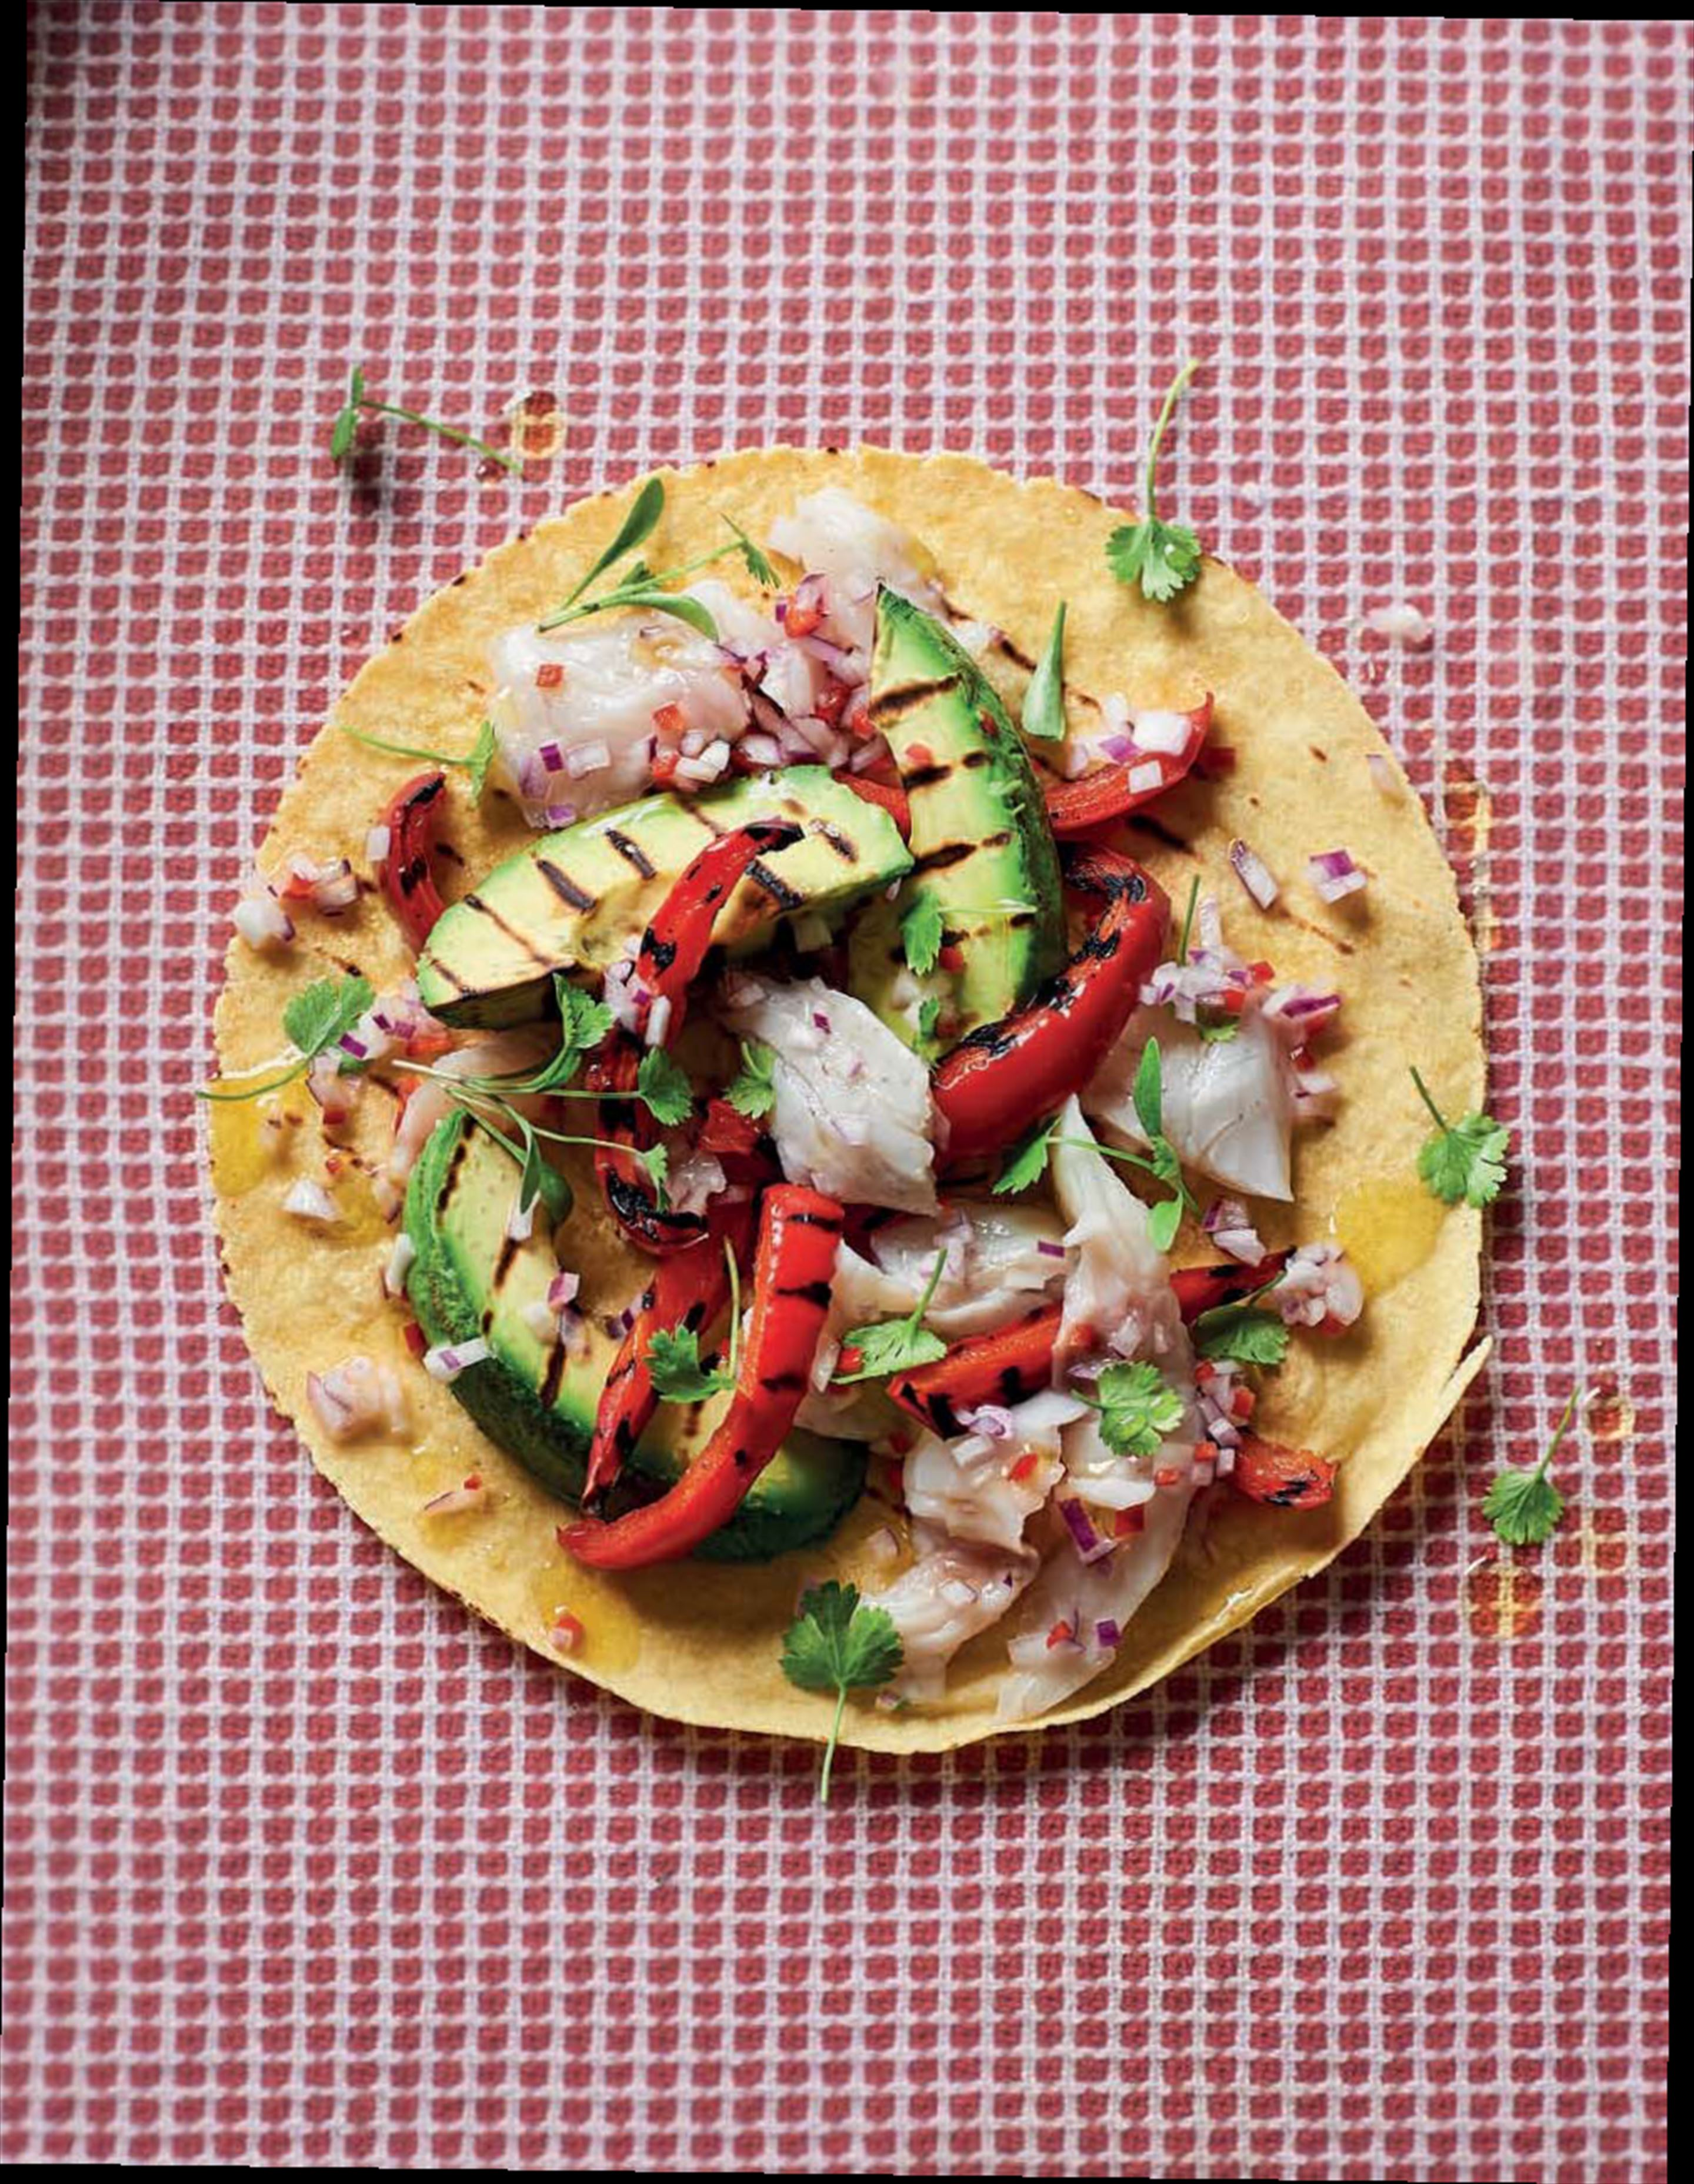 Avocado & sea bass ceviche